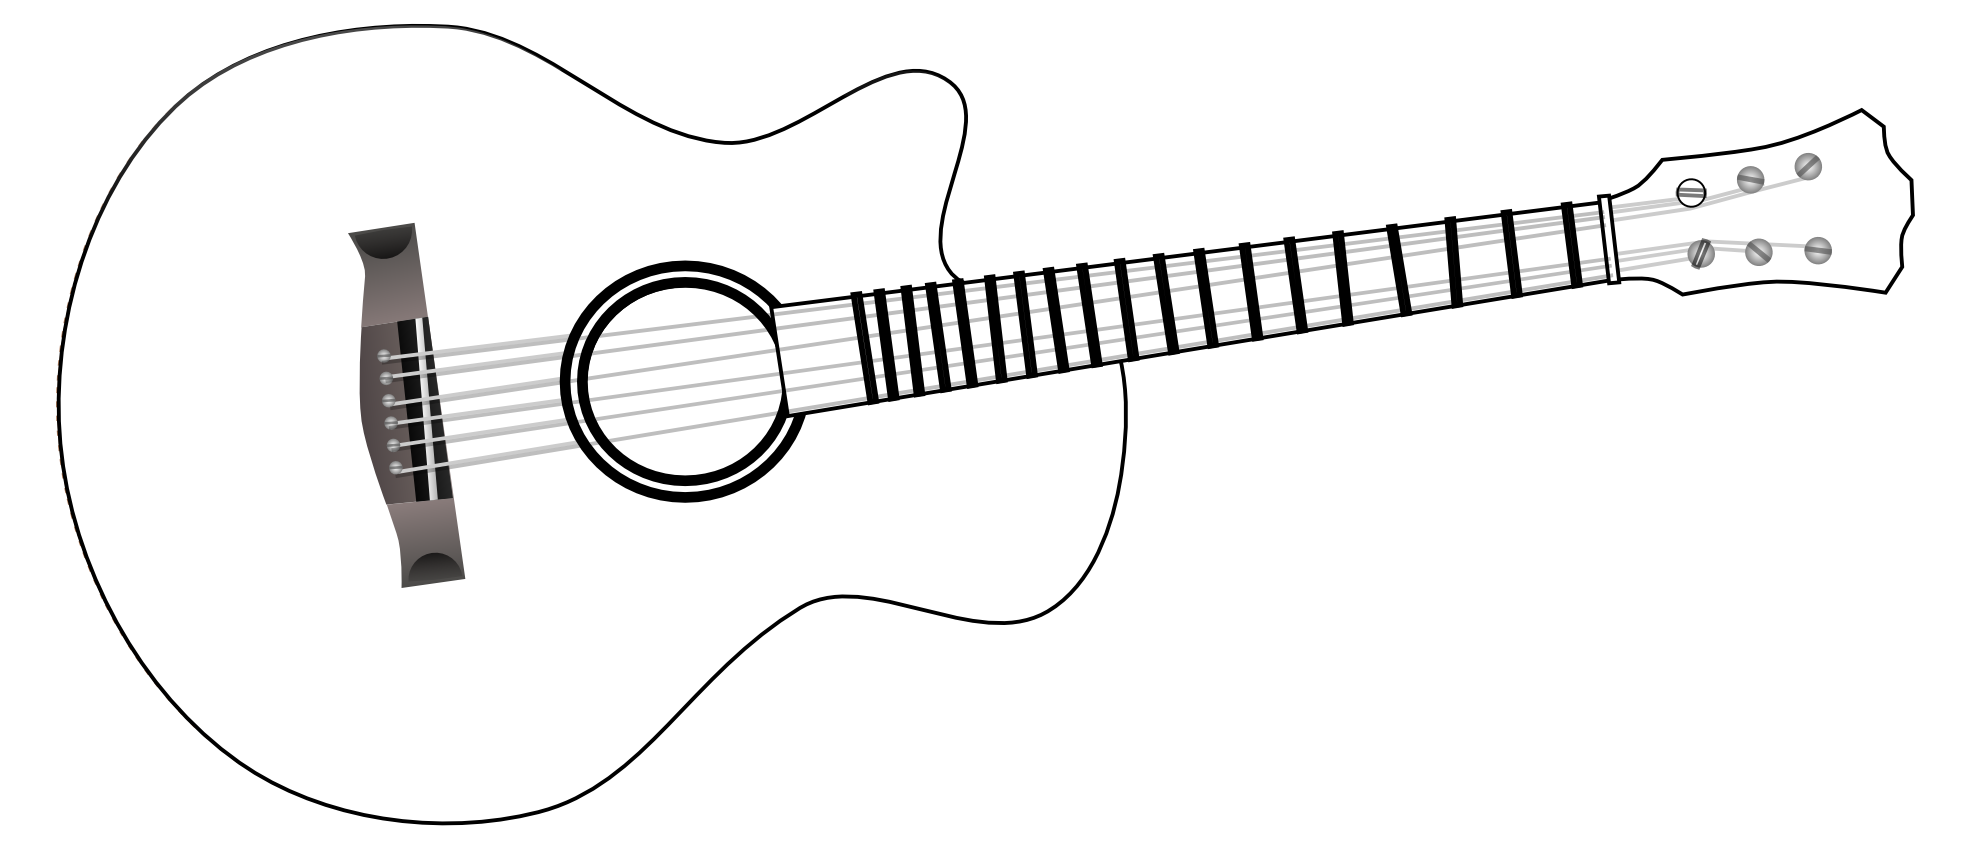 Festival clipart guitar art Guitar acoustic And black white